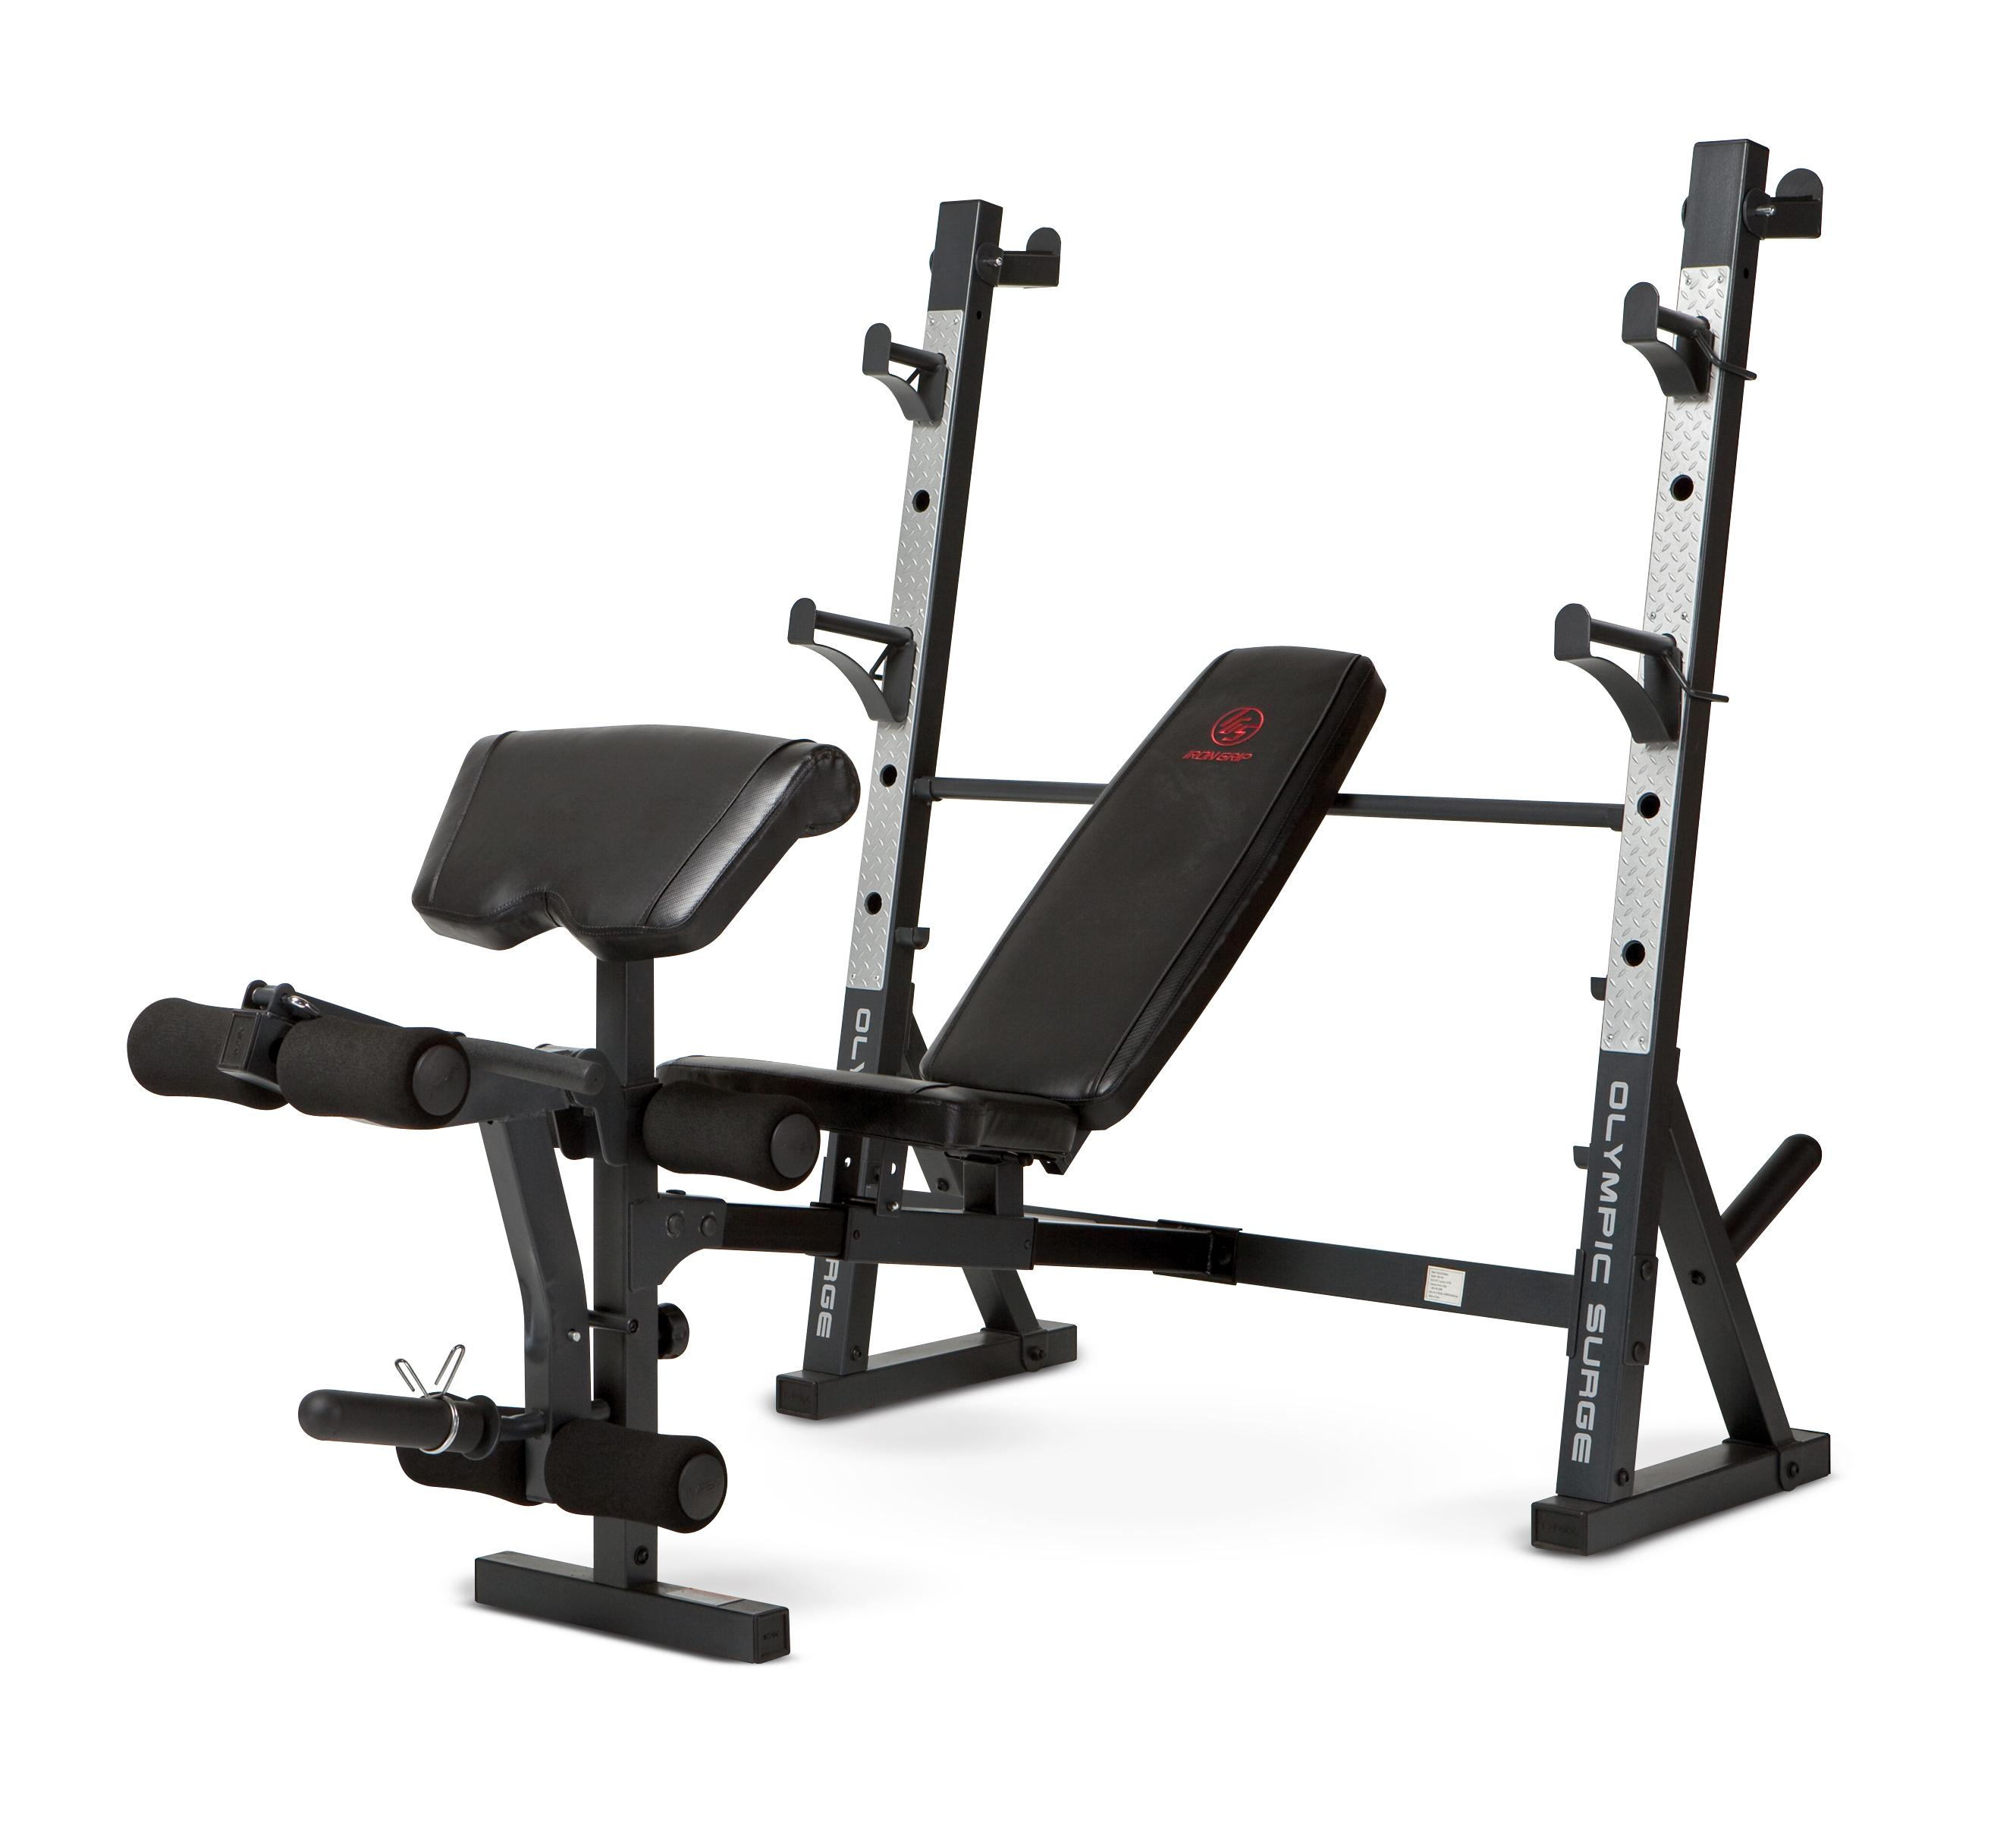 Marcy Diamond Md 857 Olympic Surge Bench Olympic Weight Benches Sports Outdoors